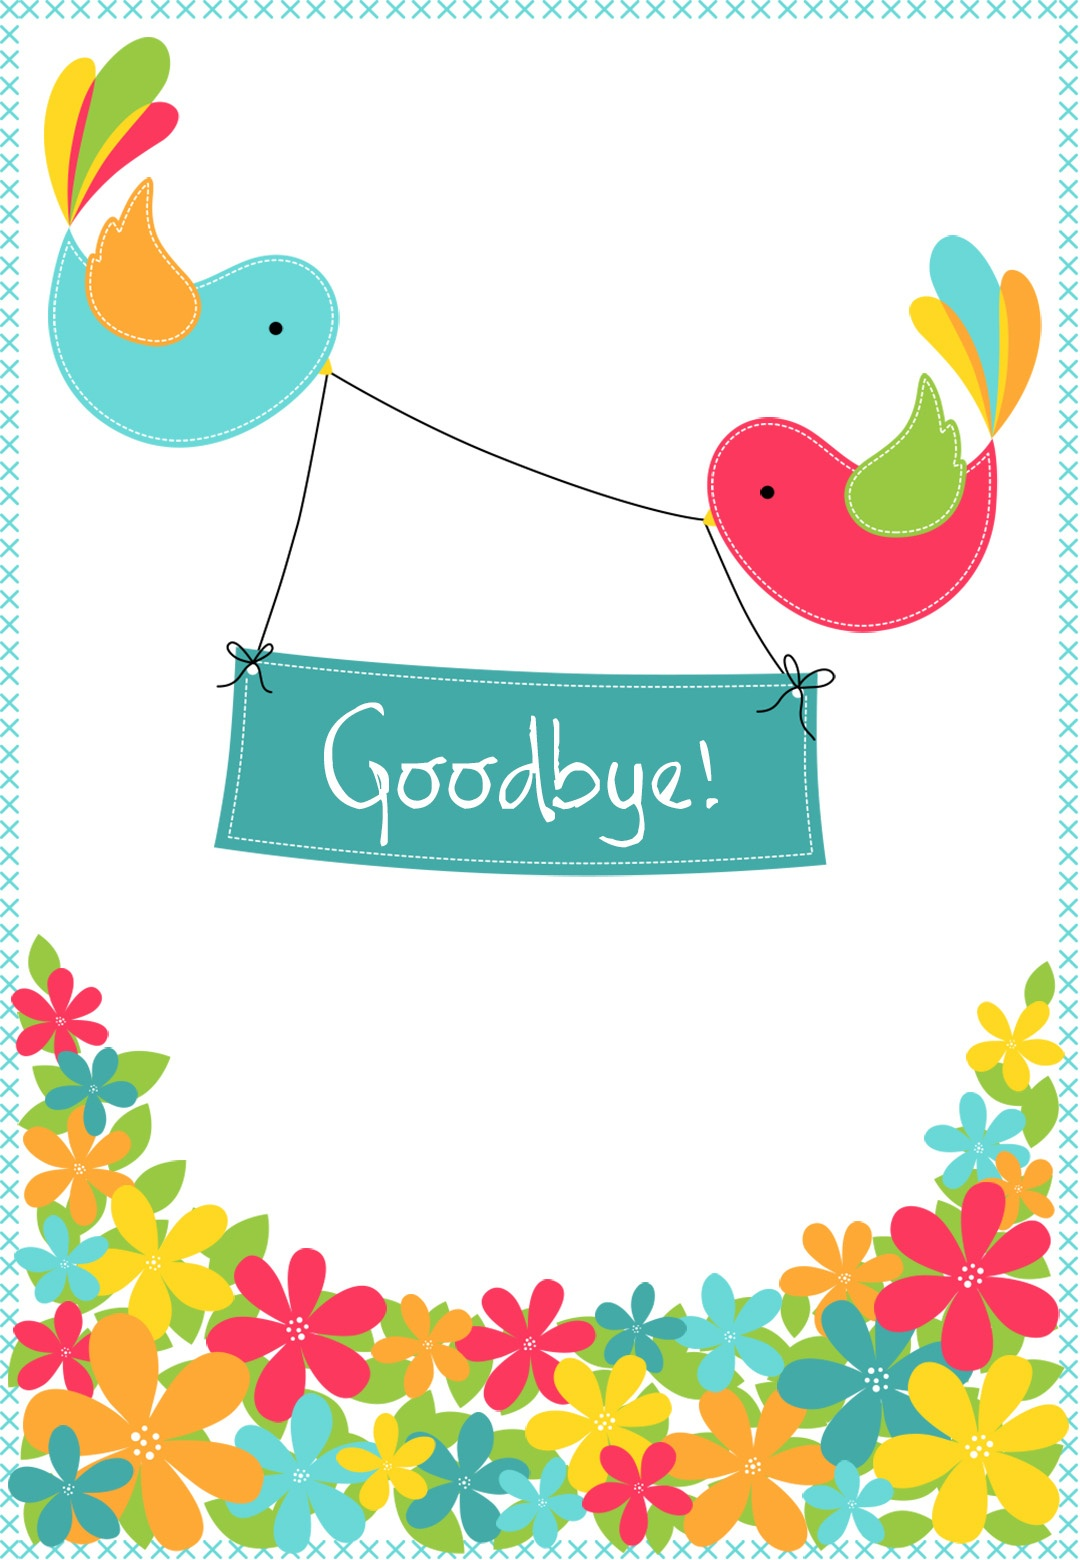 Goodbye From Your Colleagues - Good Luck Card (Free) | Greetings Island - Free Printable Goodbye Cards